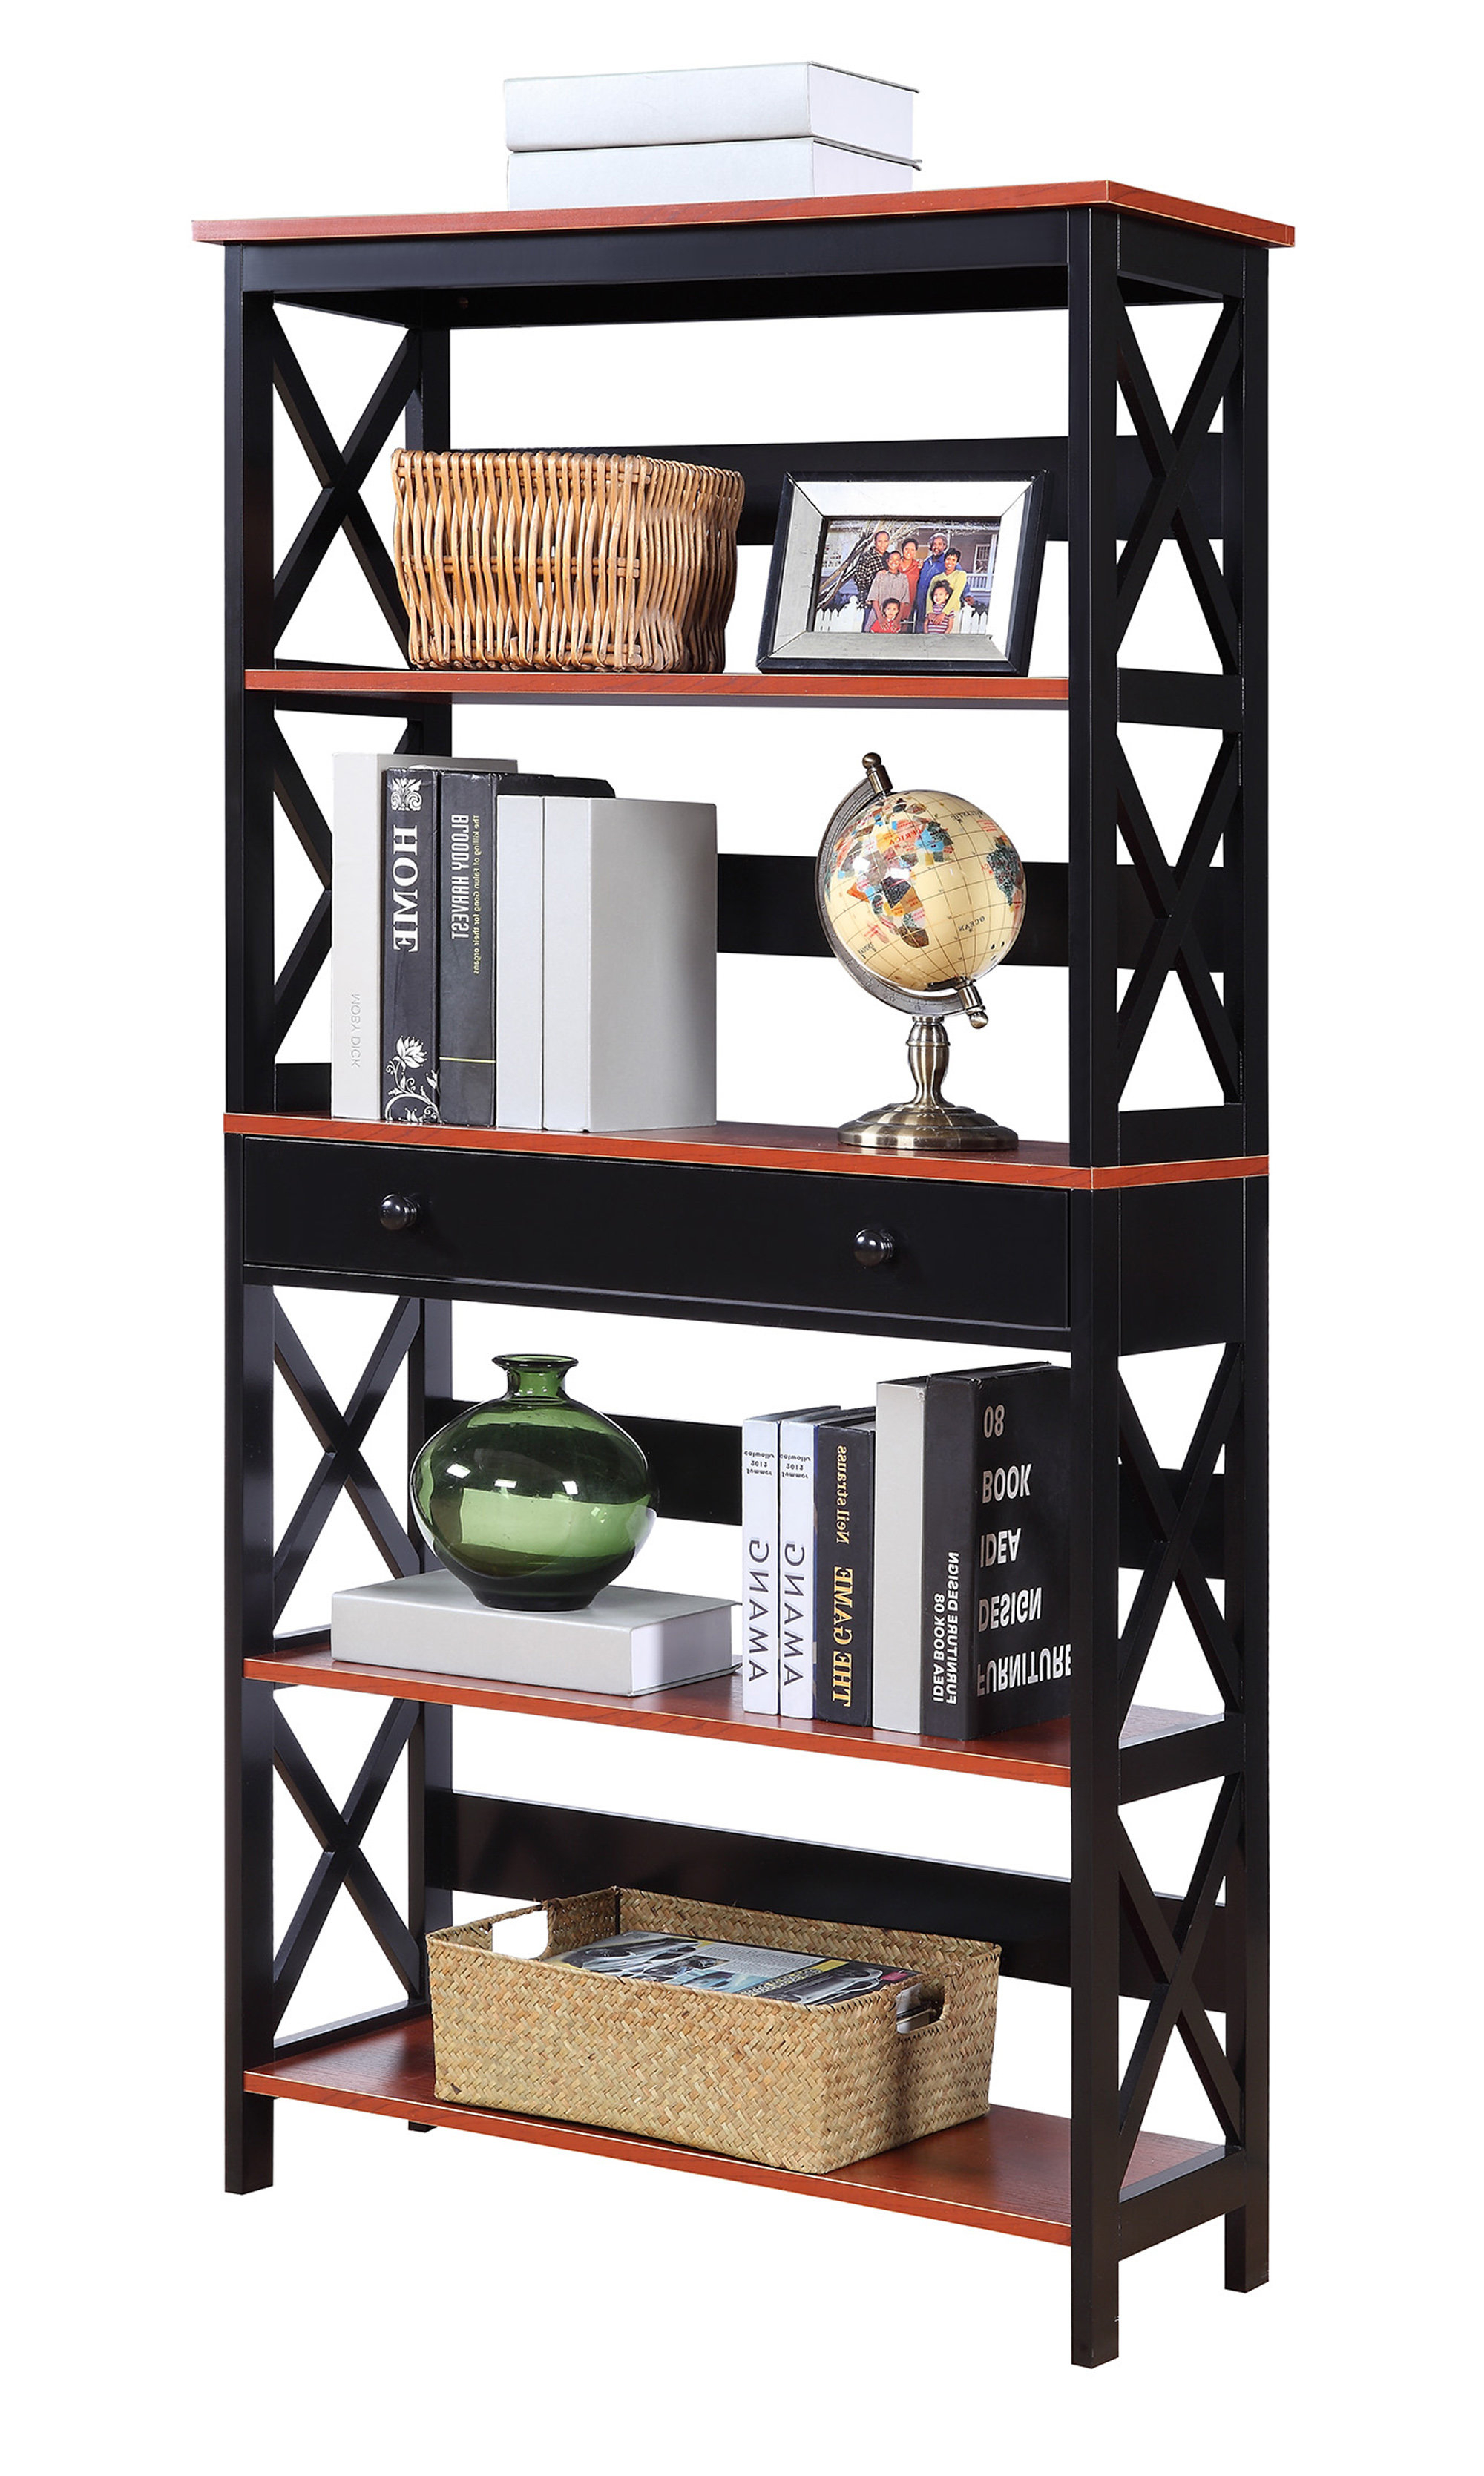 Beachcrest Home Gracelynn 5 Tier Etagere Bookcase Pertaining To Fashionable Gracelynn 5 Tier Etagere Bookcases (View 2 of 20)